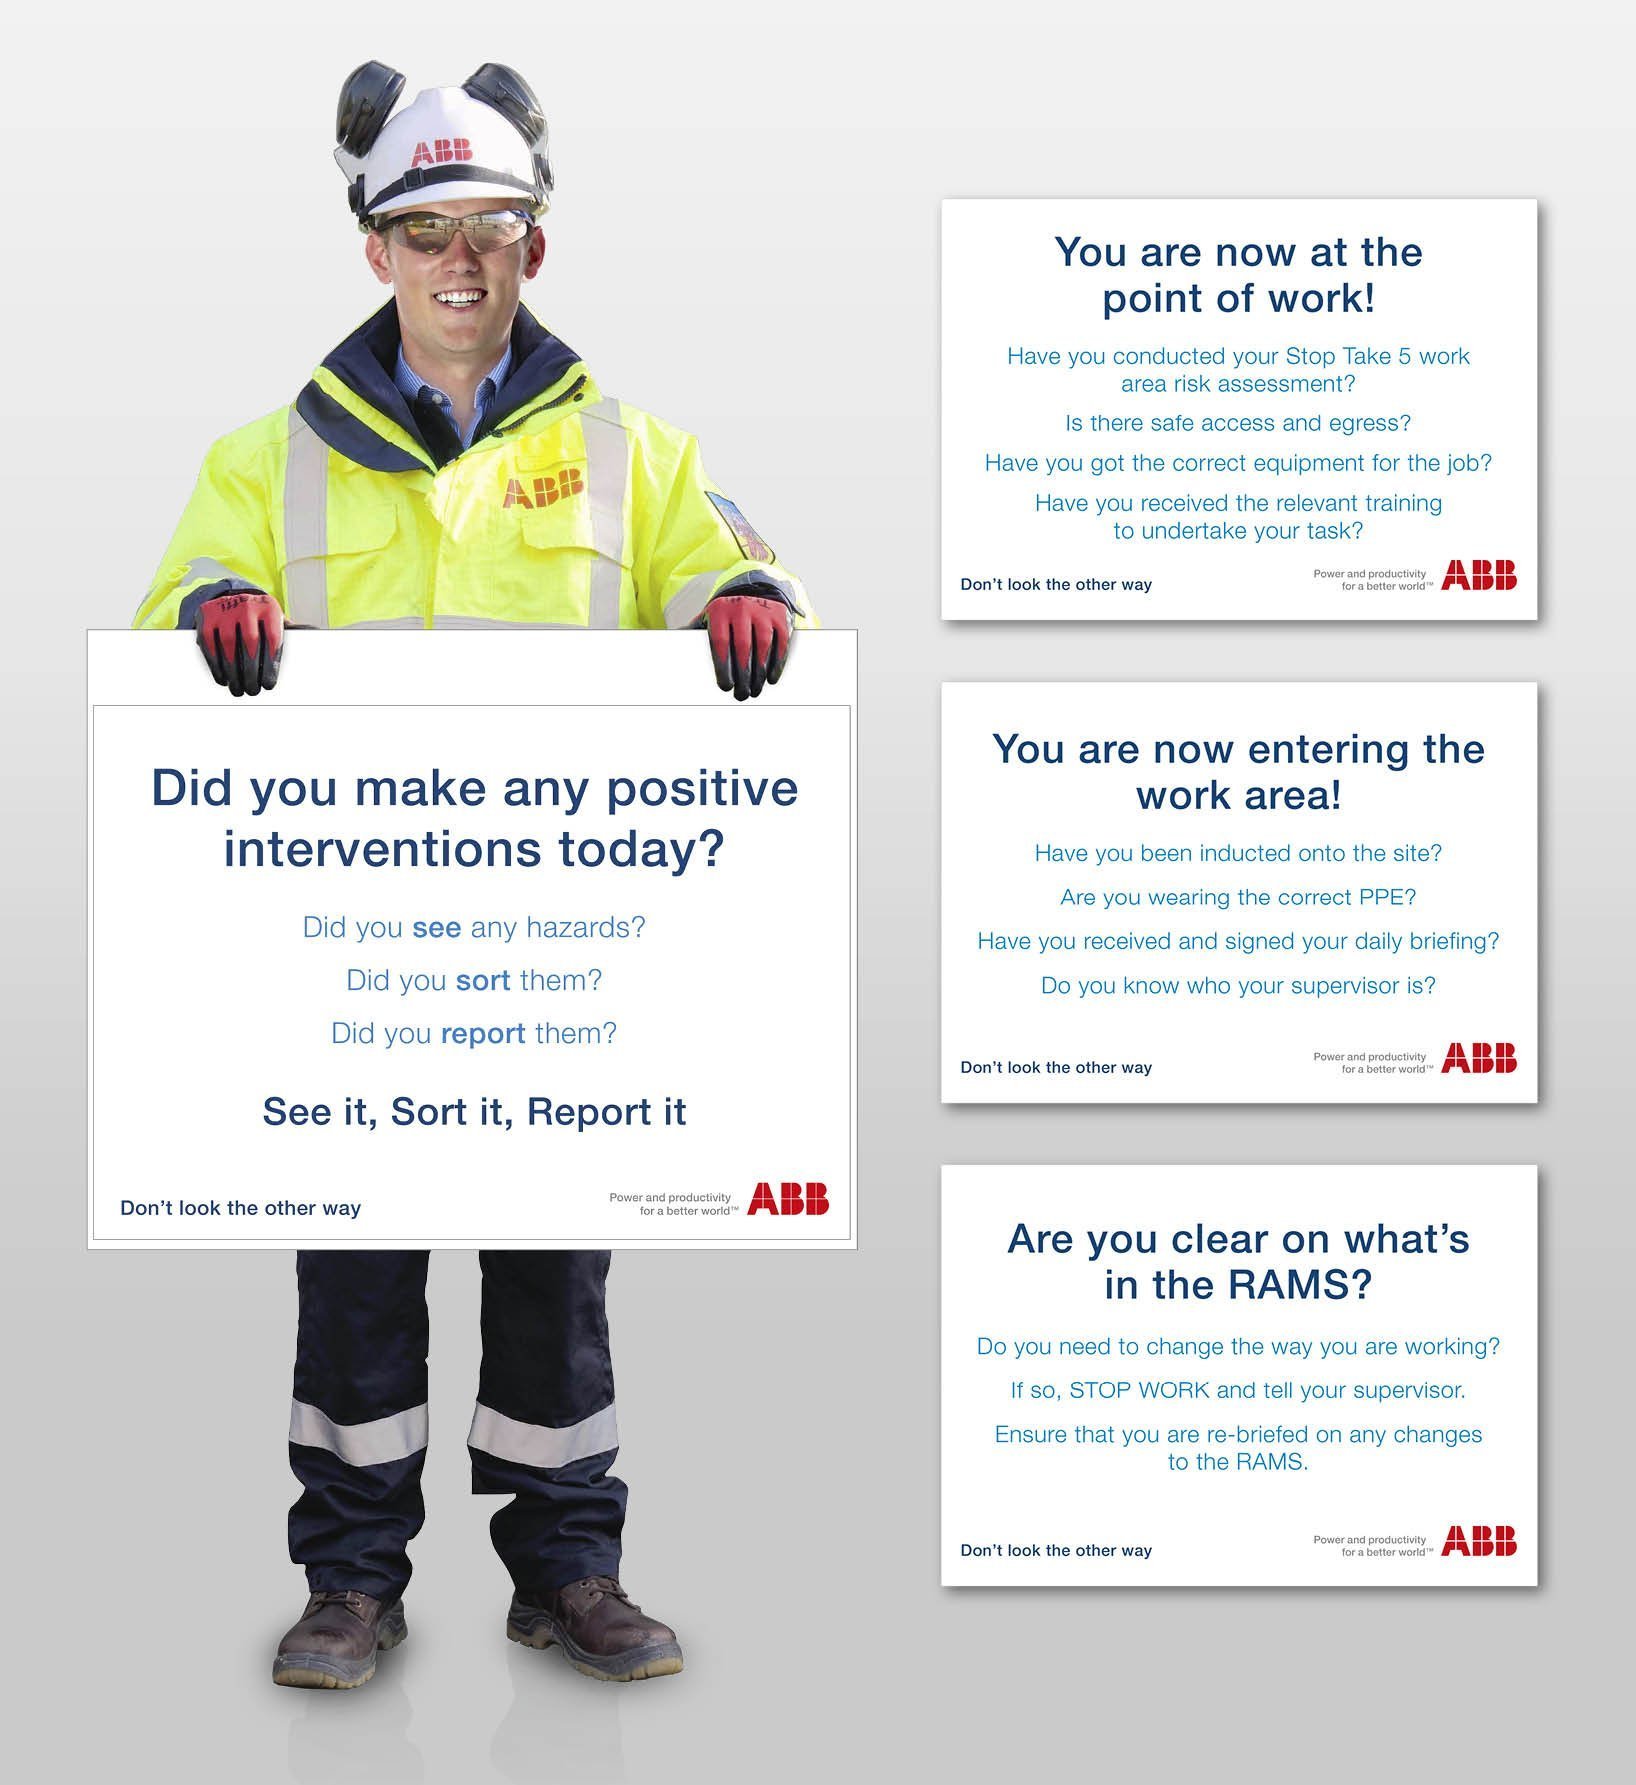 ABB Health & Safety Campaign - Site Standee Design